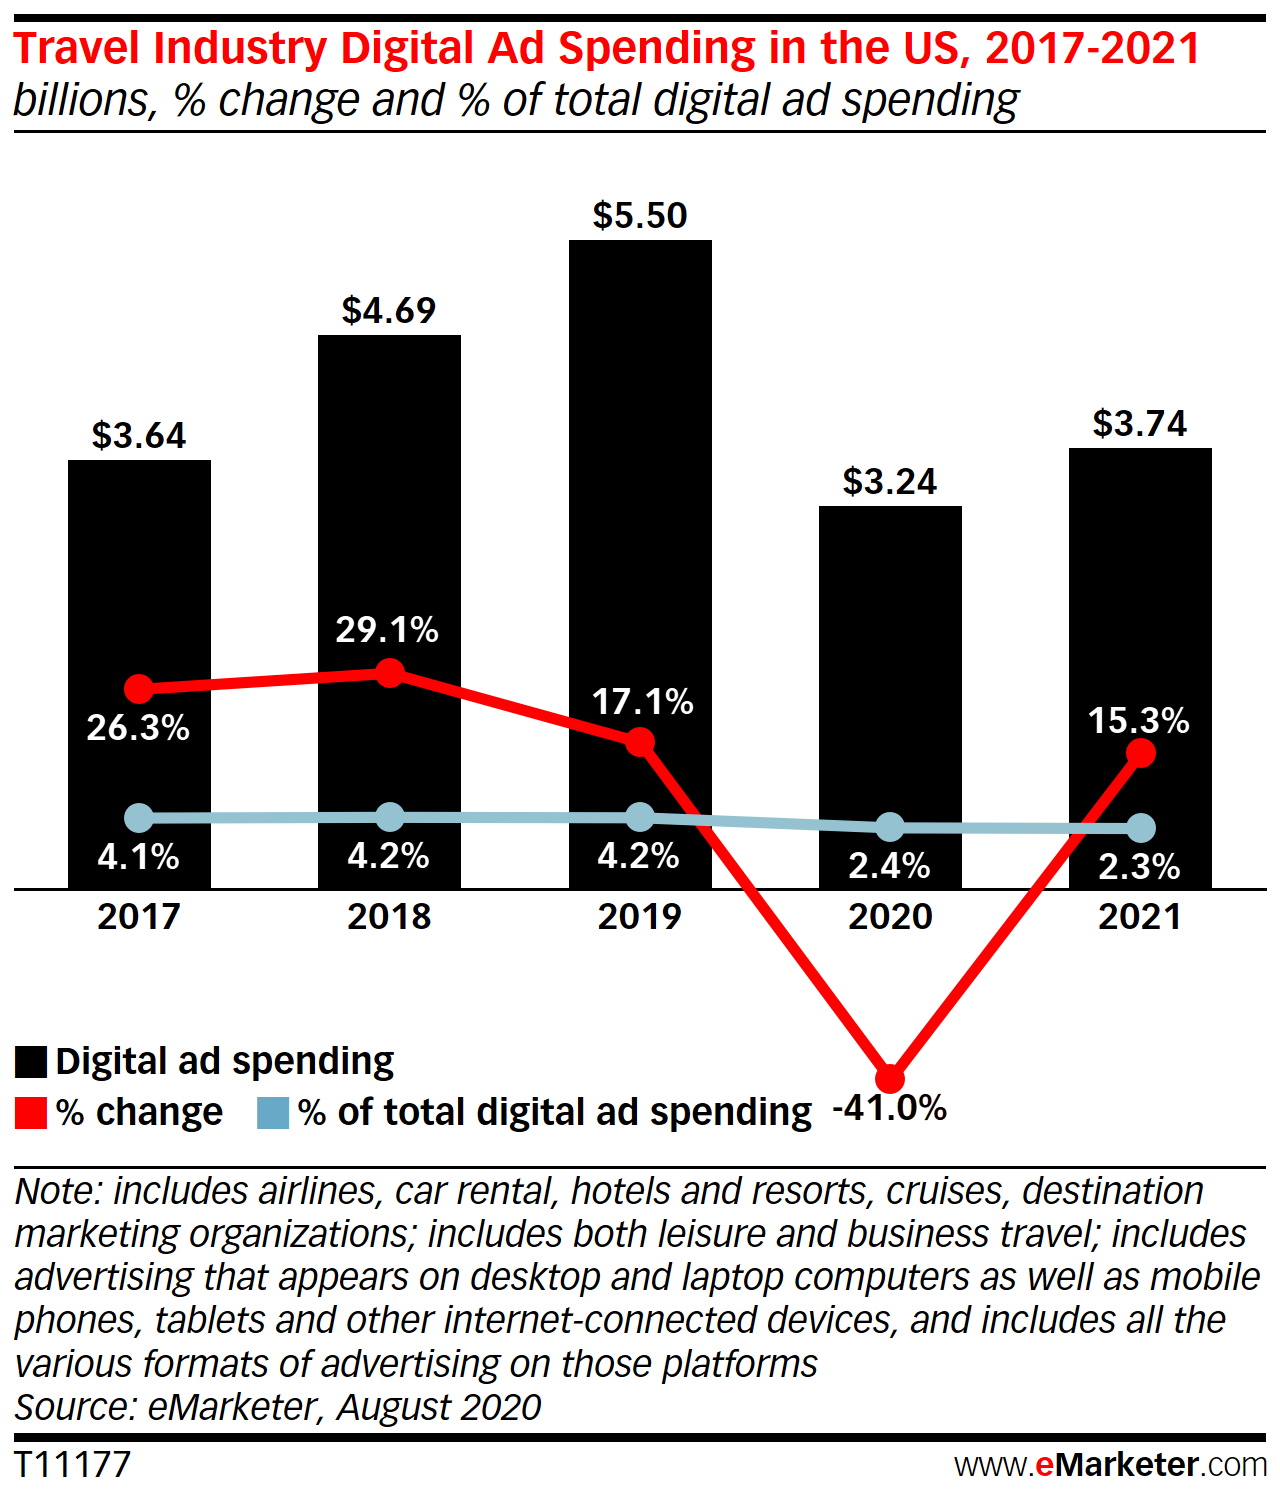 Travel Industry Digital Ad Spending in the US, 2017-2021 (billions, % change, and % of total digital ad spending)